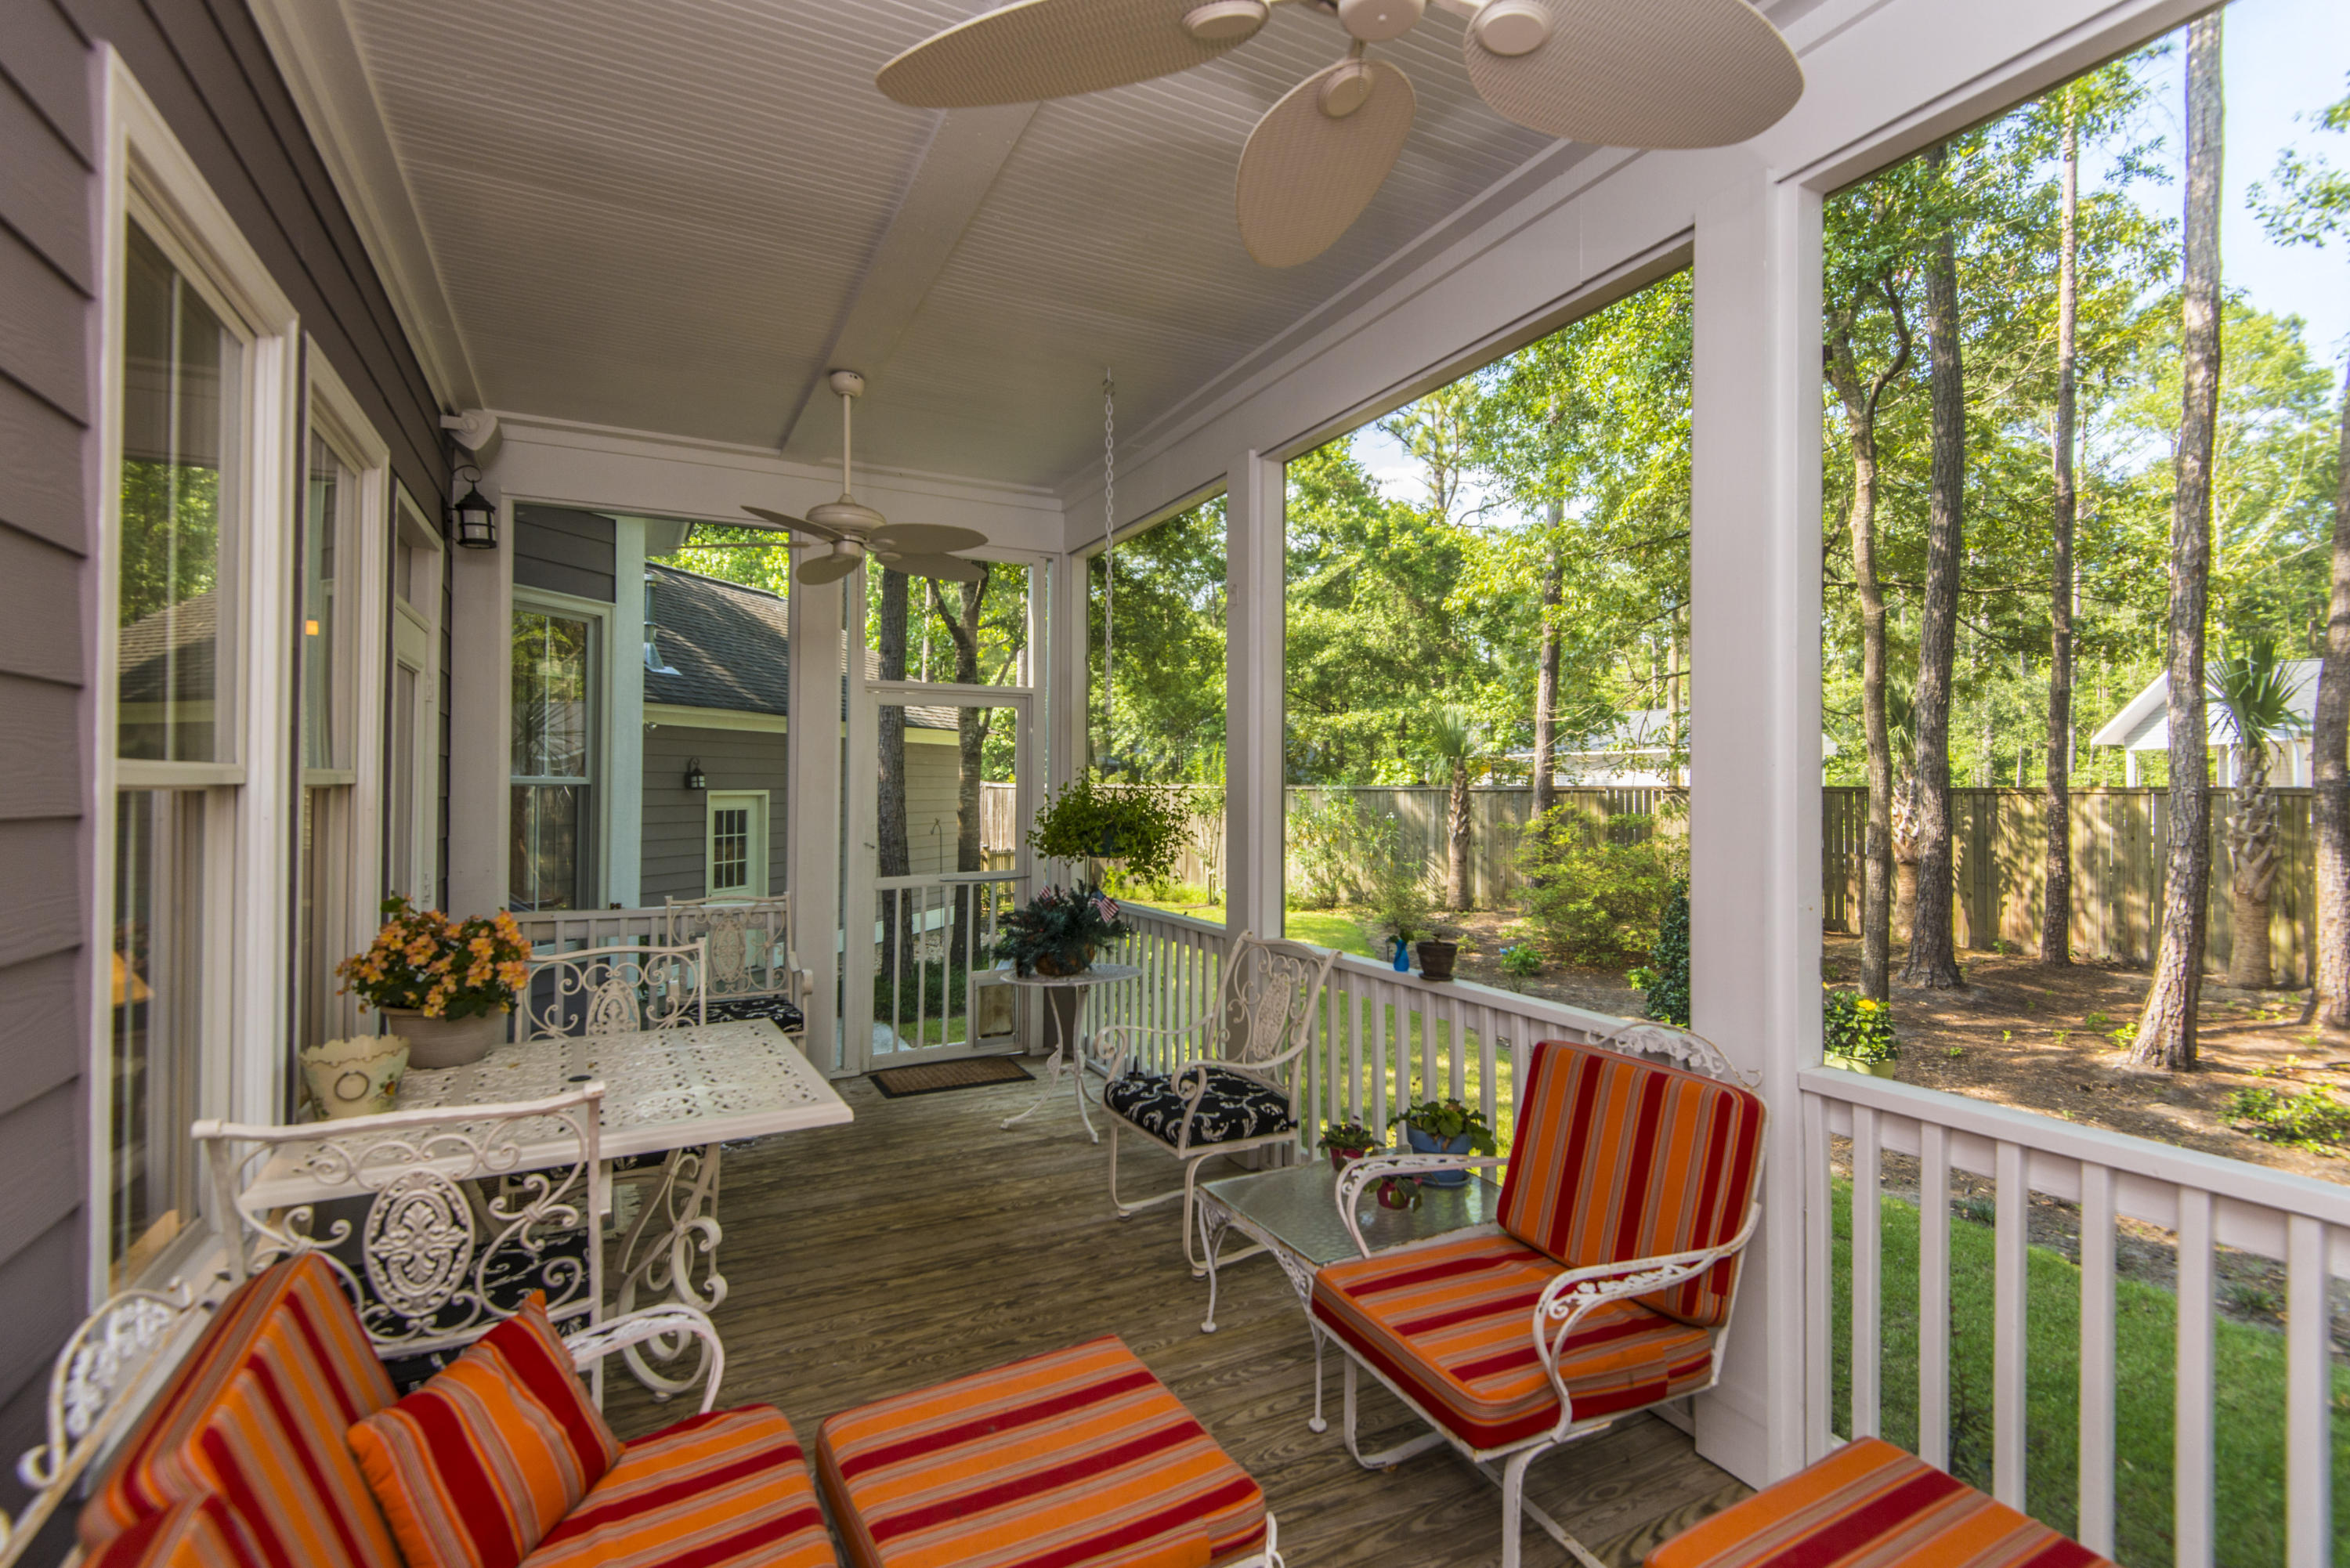 The Villages In St Johns Woods Homes For Sale - 4087 Amy, Johns Island, SC - 22